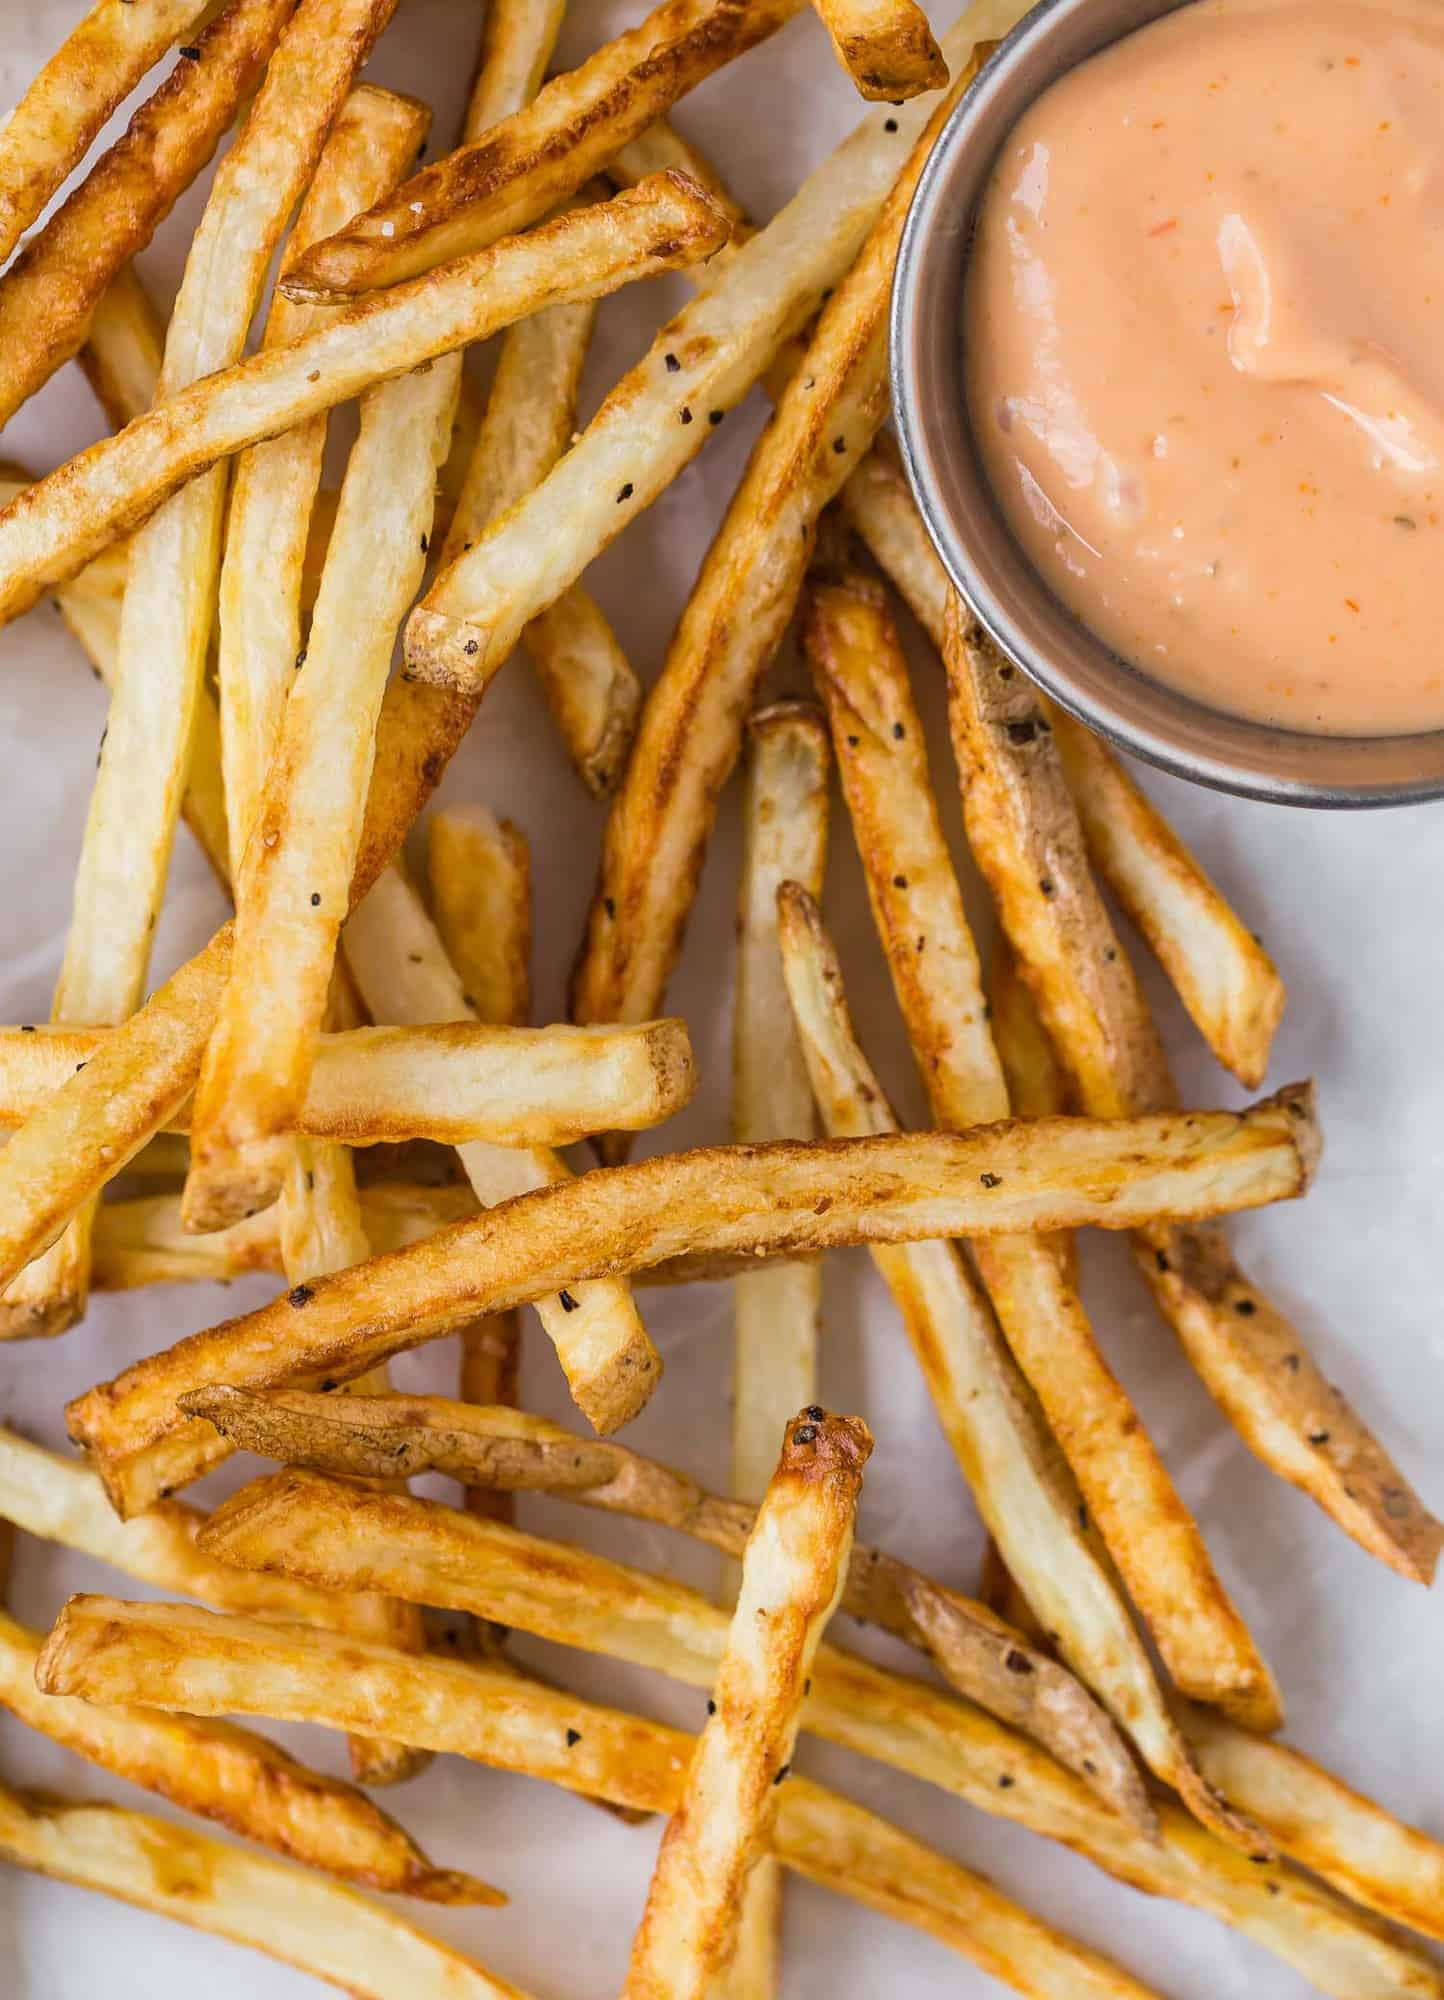 Overhead view of crispy fries with dipping sauce.